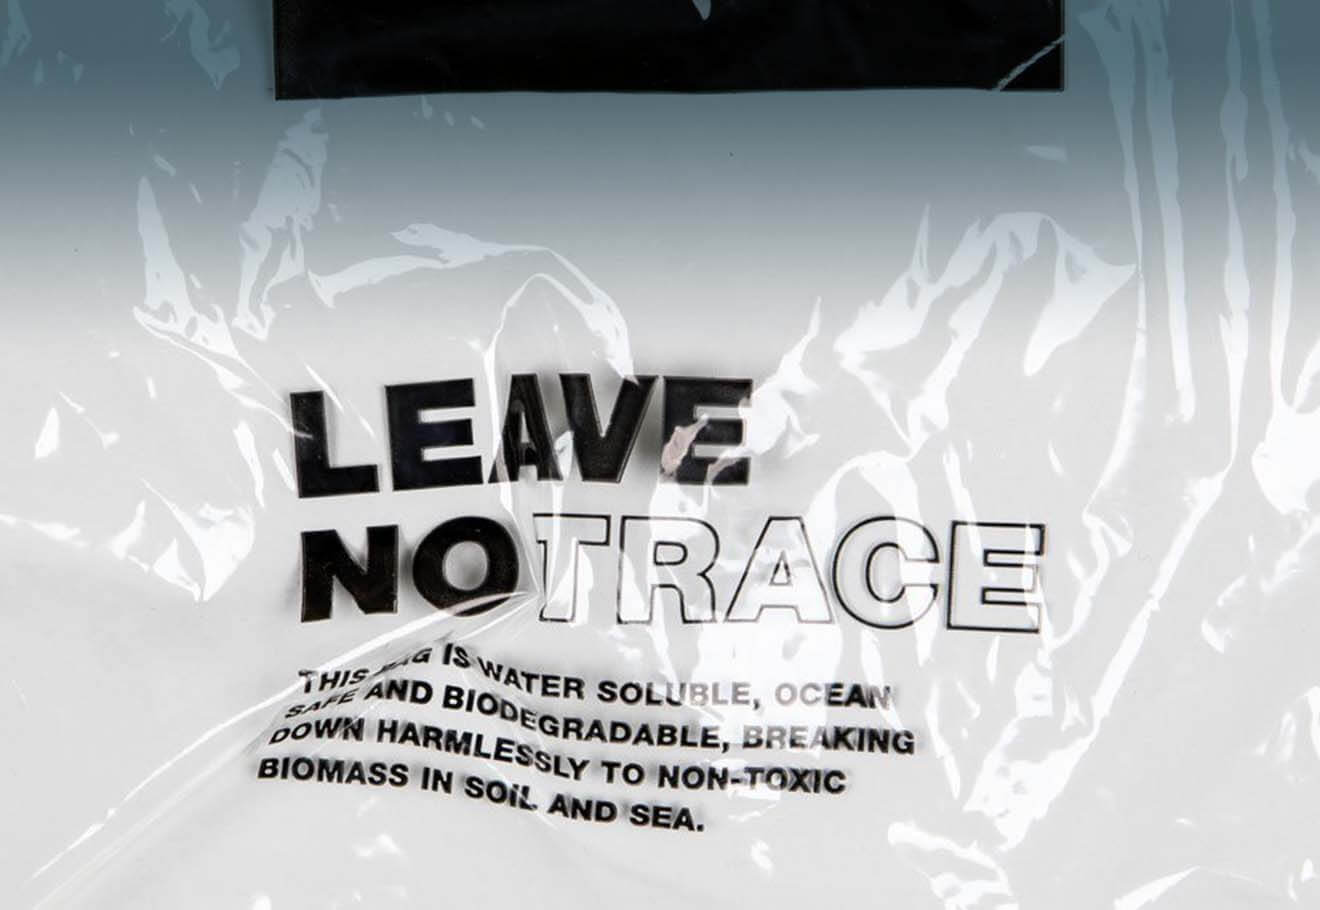 'Leave No Trace' water soluble packaging made by Finisterre and Aquapak